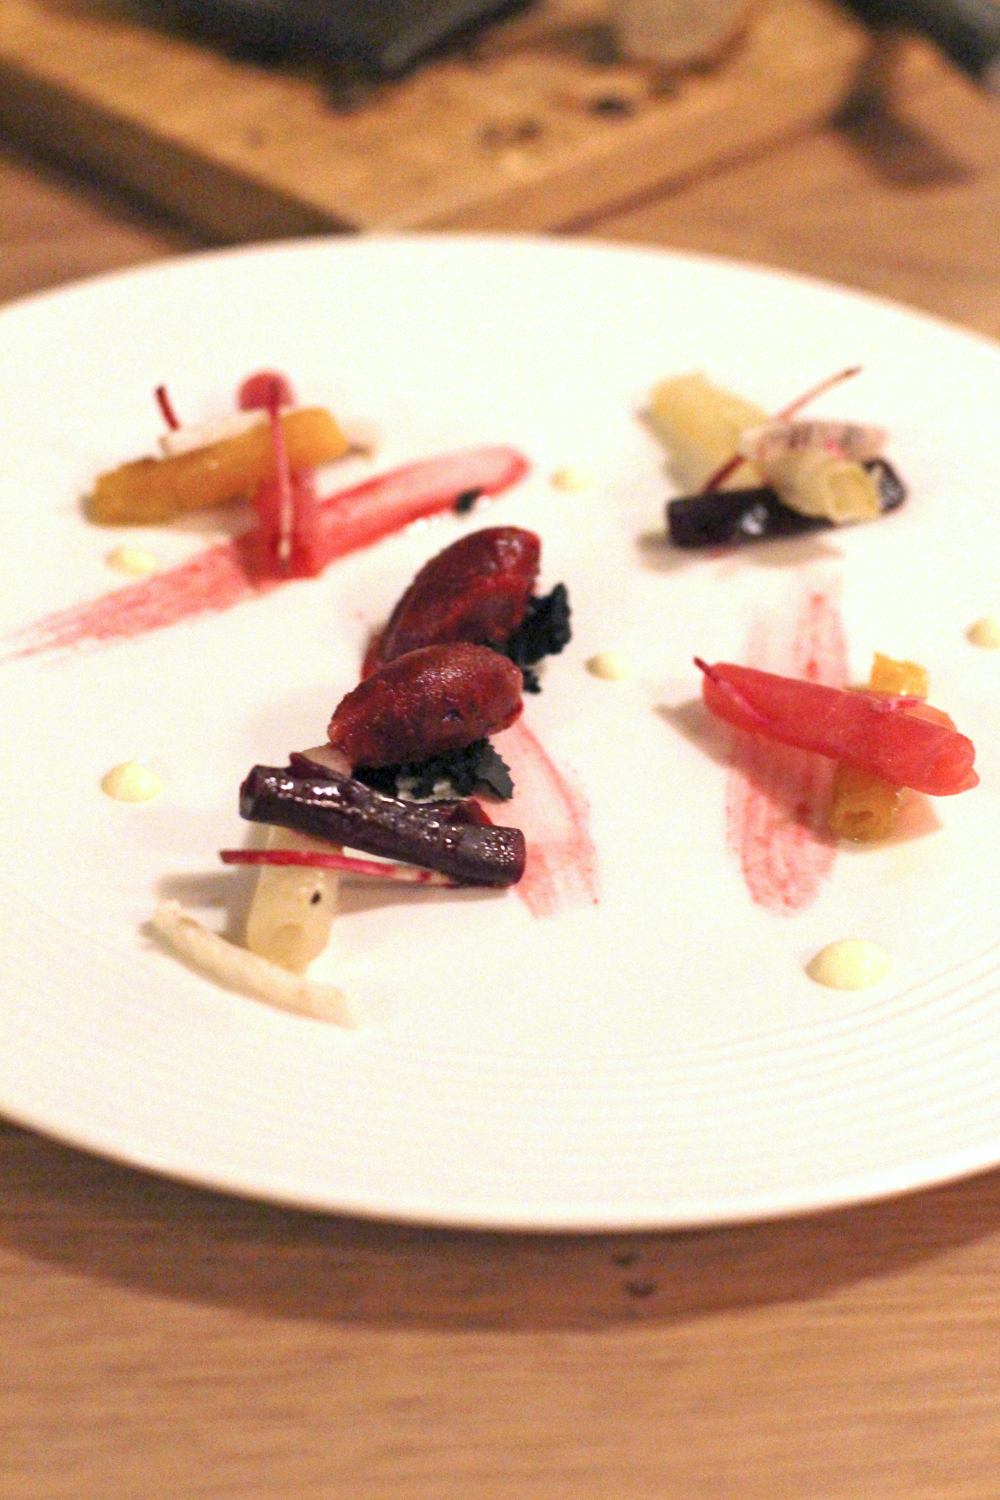 Beetroot starter at Le Diamont Noir, Hotel Koh-I Nor in Val Thorens, Les Trois Vallees - luxury travel blog